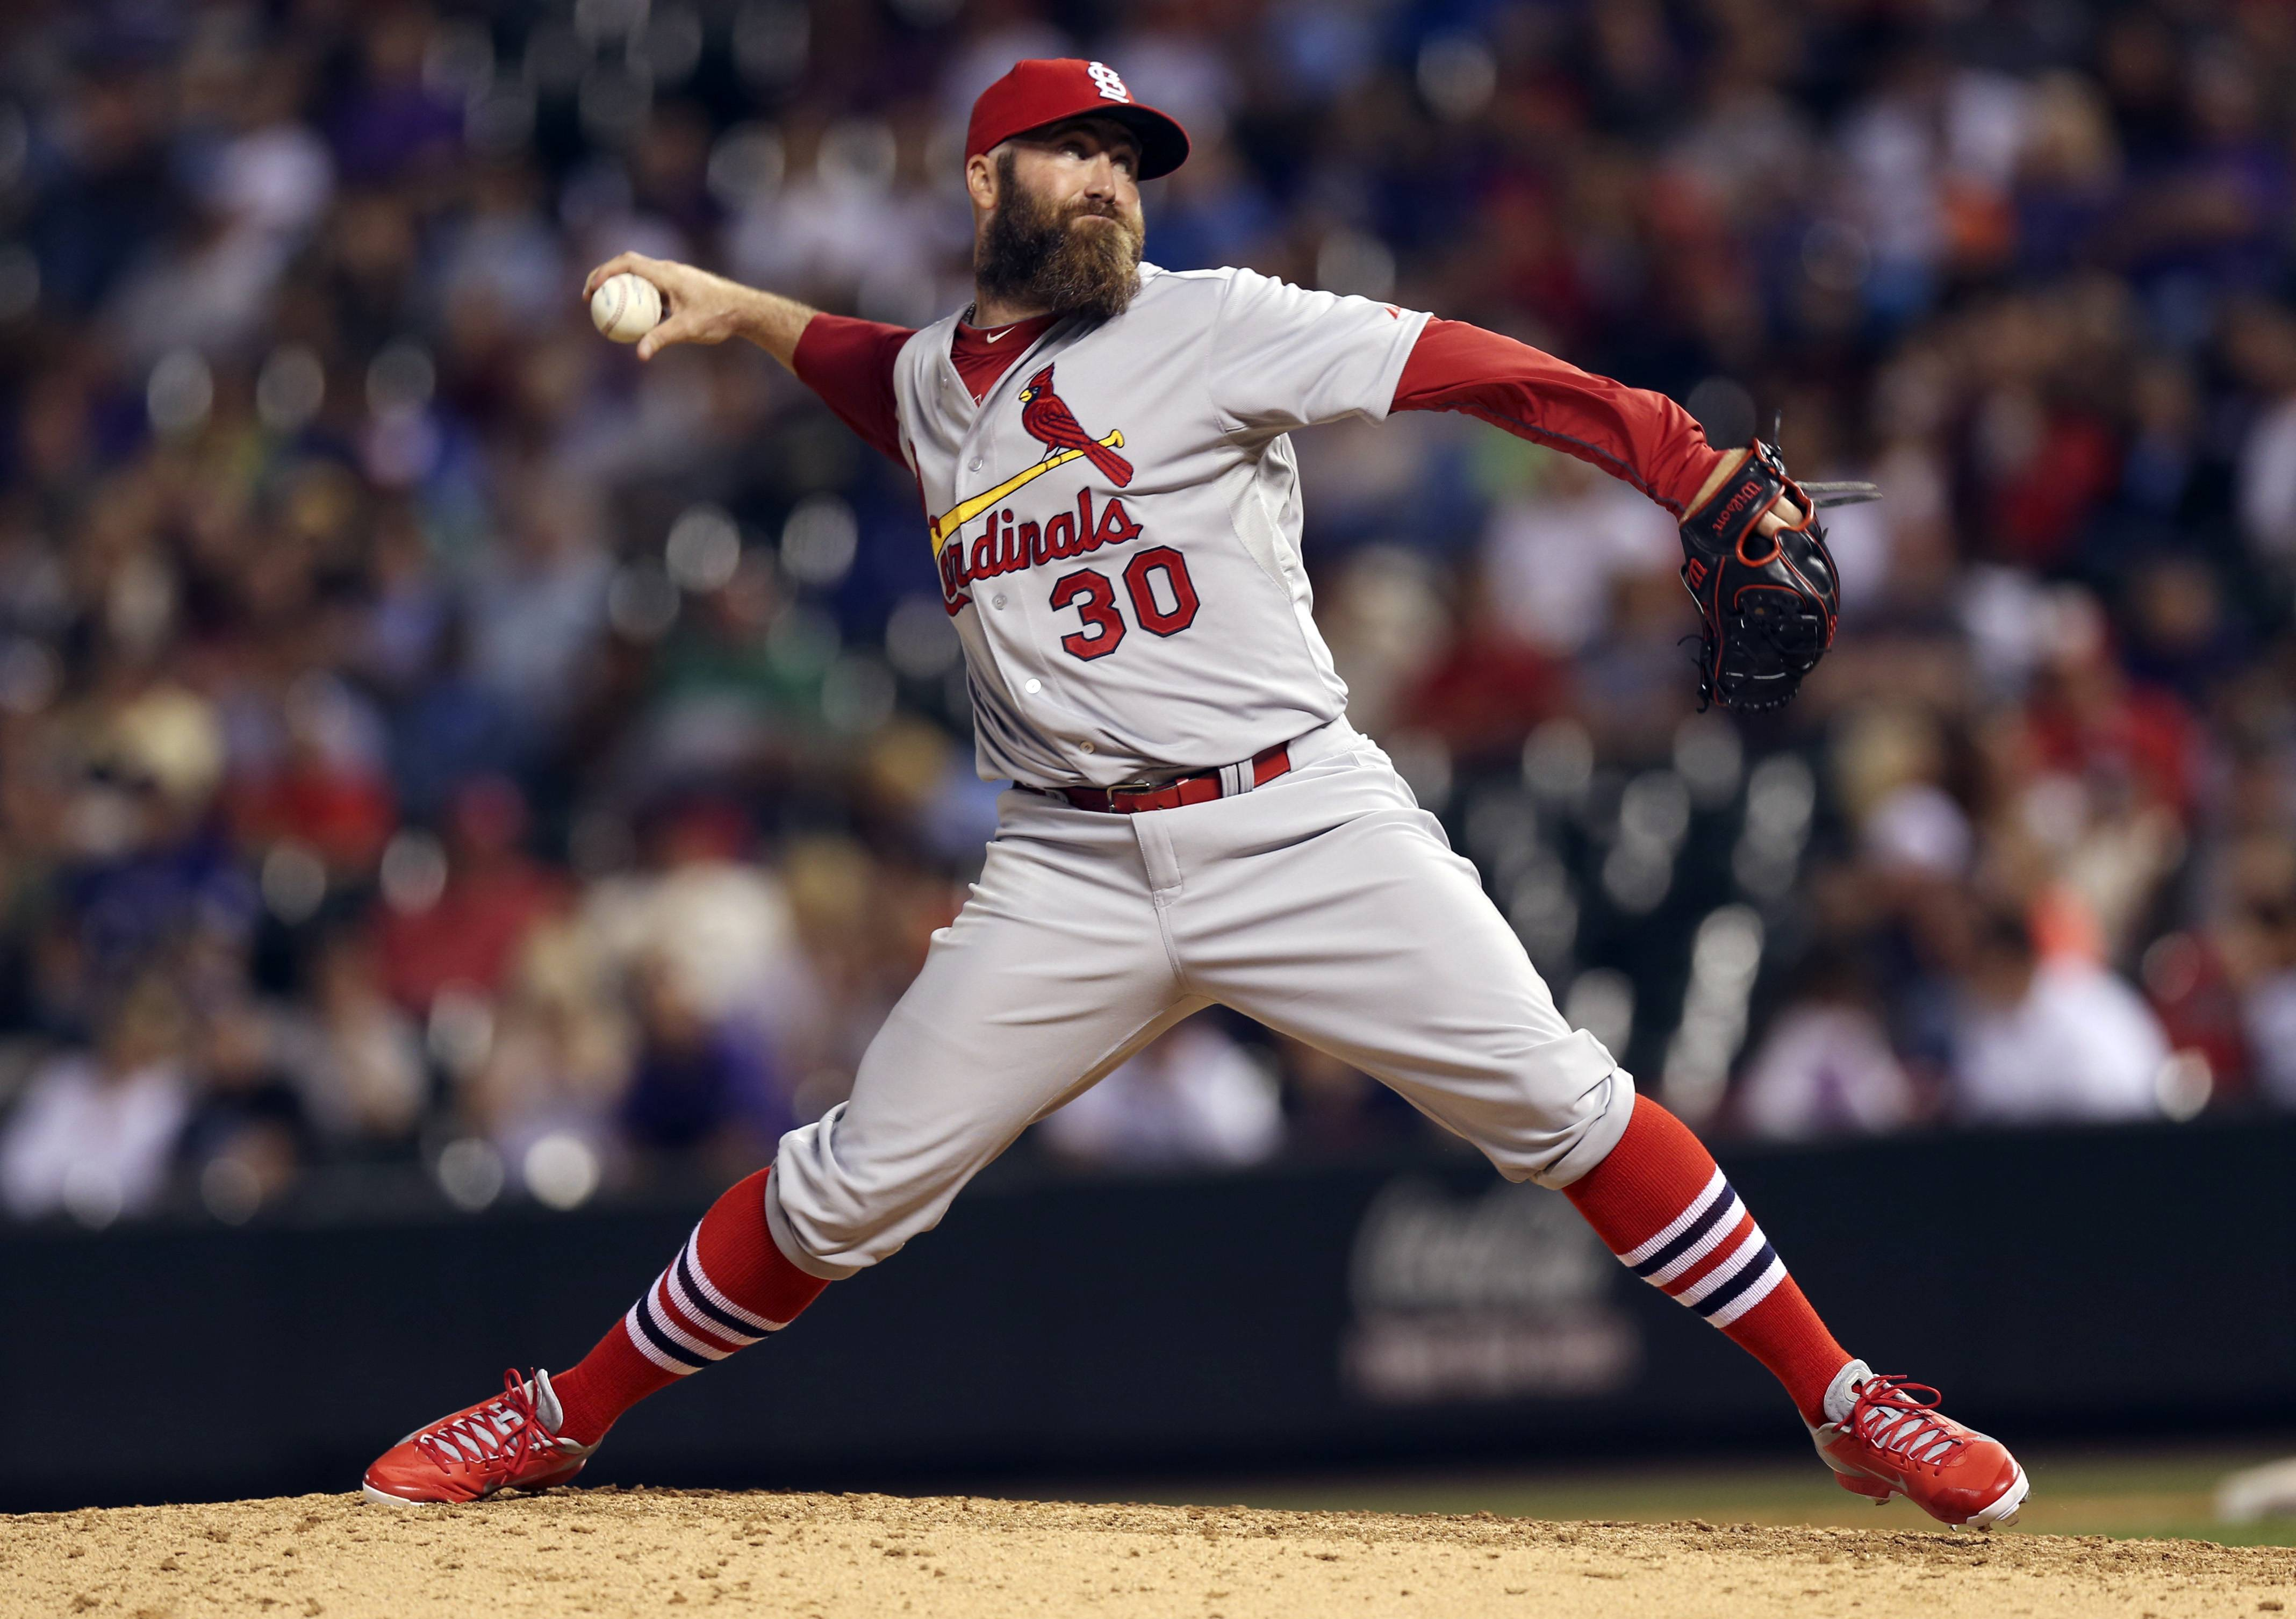 Former Cardinals relief pitcher Jason Motte has agreed to a $4.5 million, one-year contract with the Cubs. Motte was the closer for St. Louis in 2011 and 2012 before having elbow surgery in 2013.